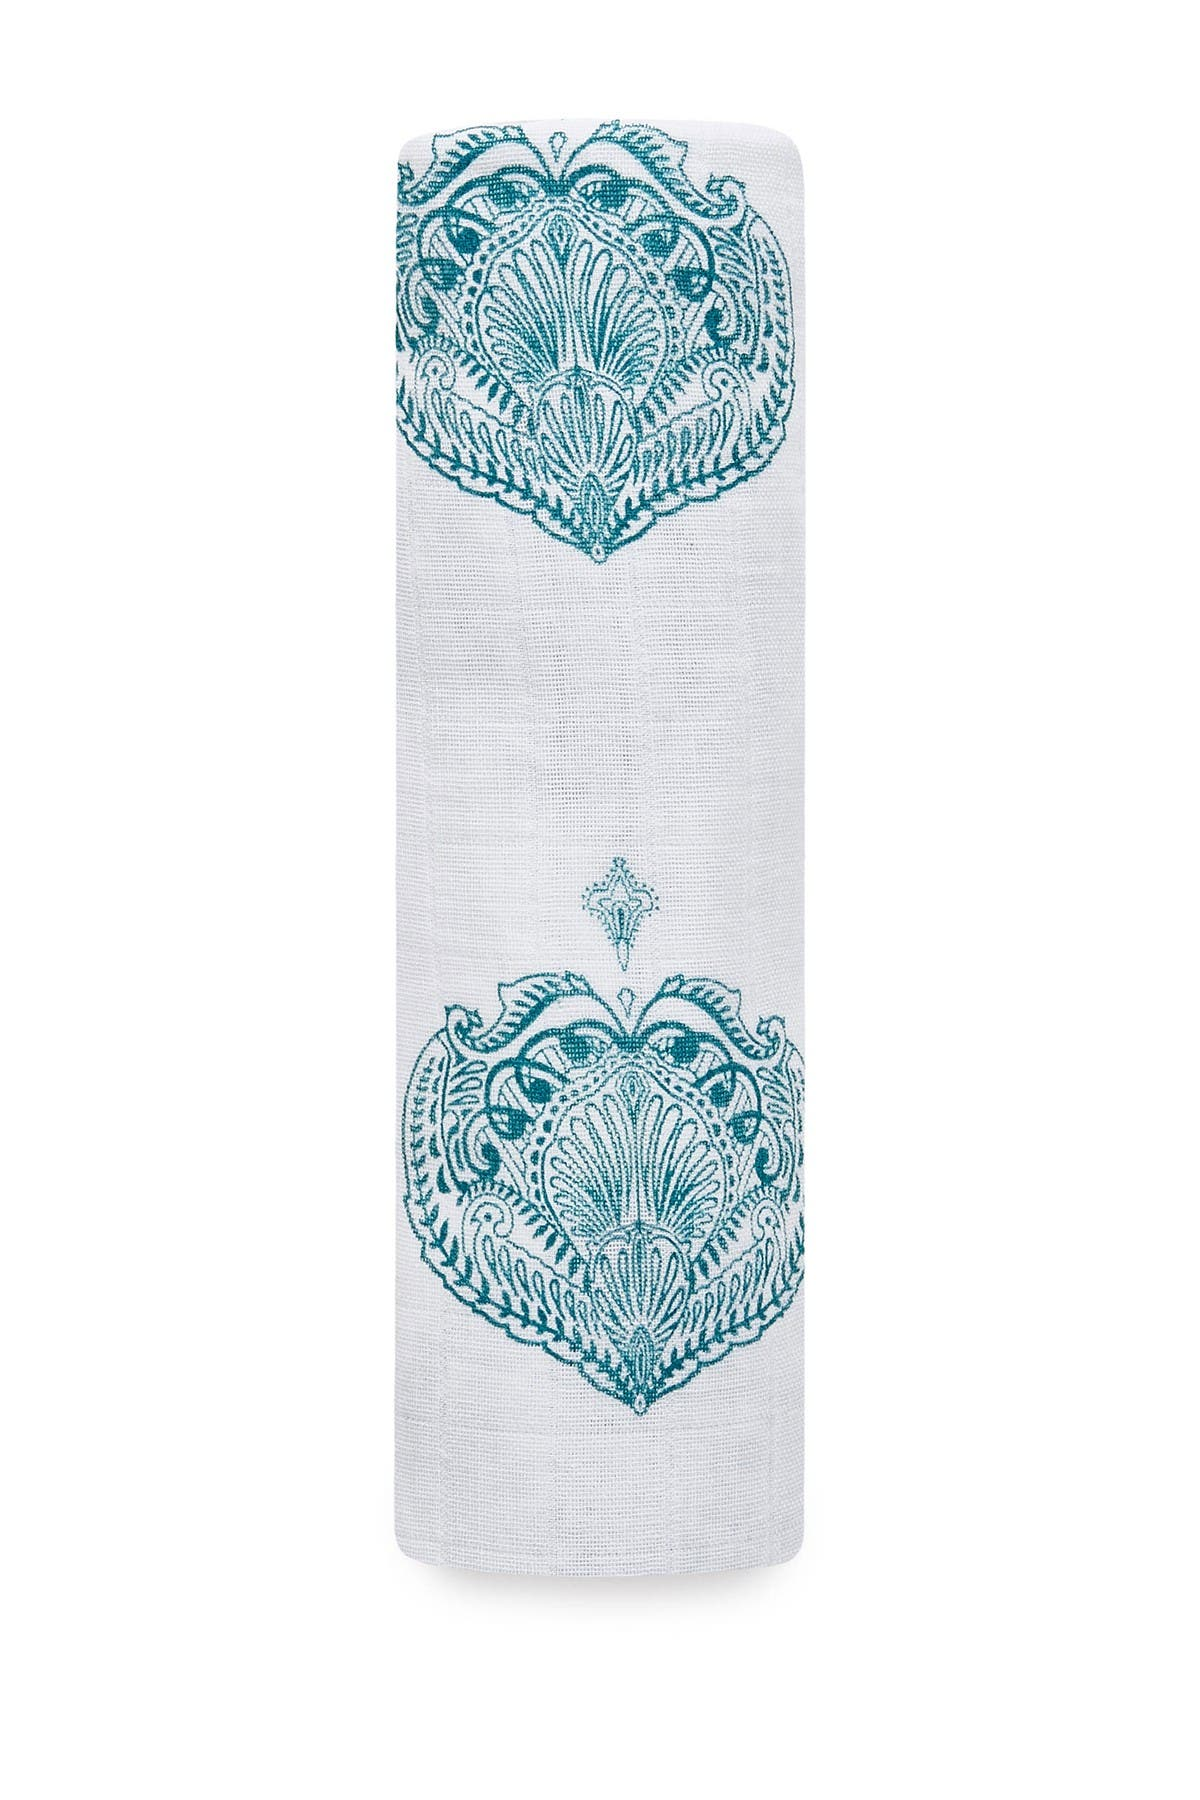 Image of aden + anais Paisley Teal Classic Muslin Swaddle